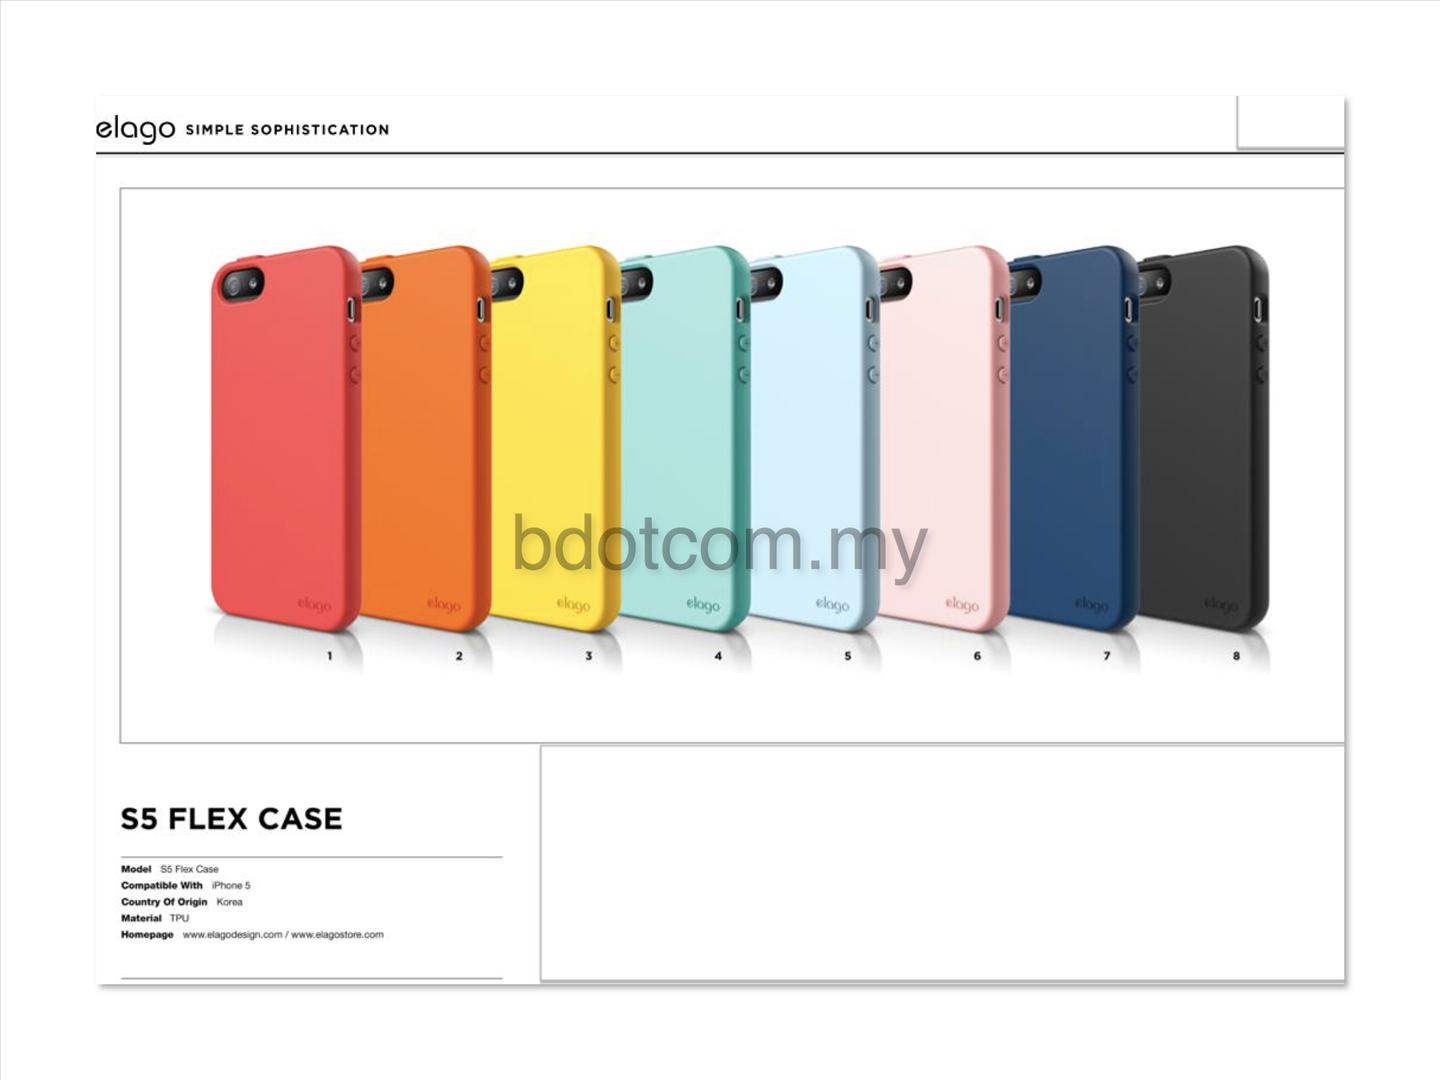 Bdotcom = Apple iPhone 5 Elago S5 Flex Case